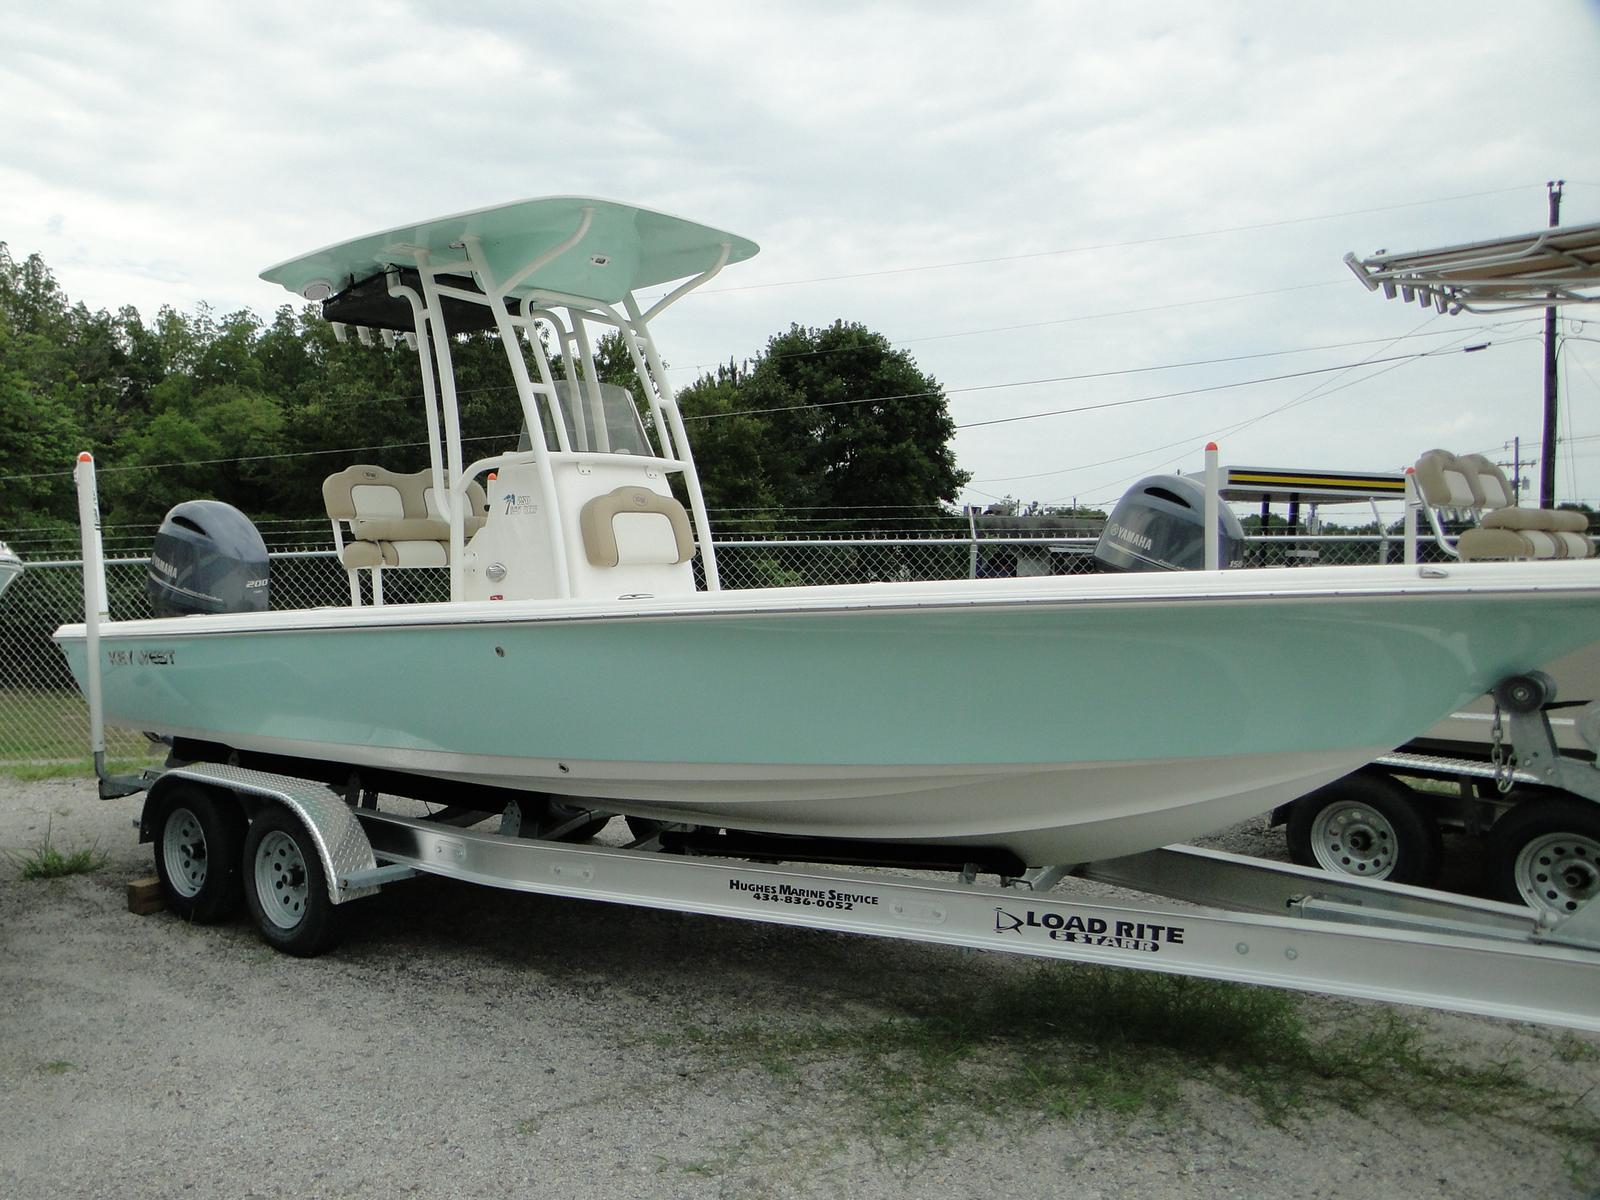 Key West boats for sale in Virginia - Boat Trader